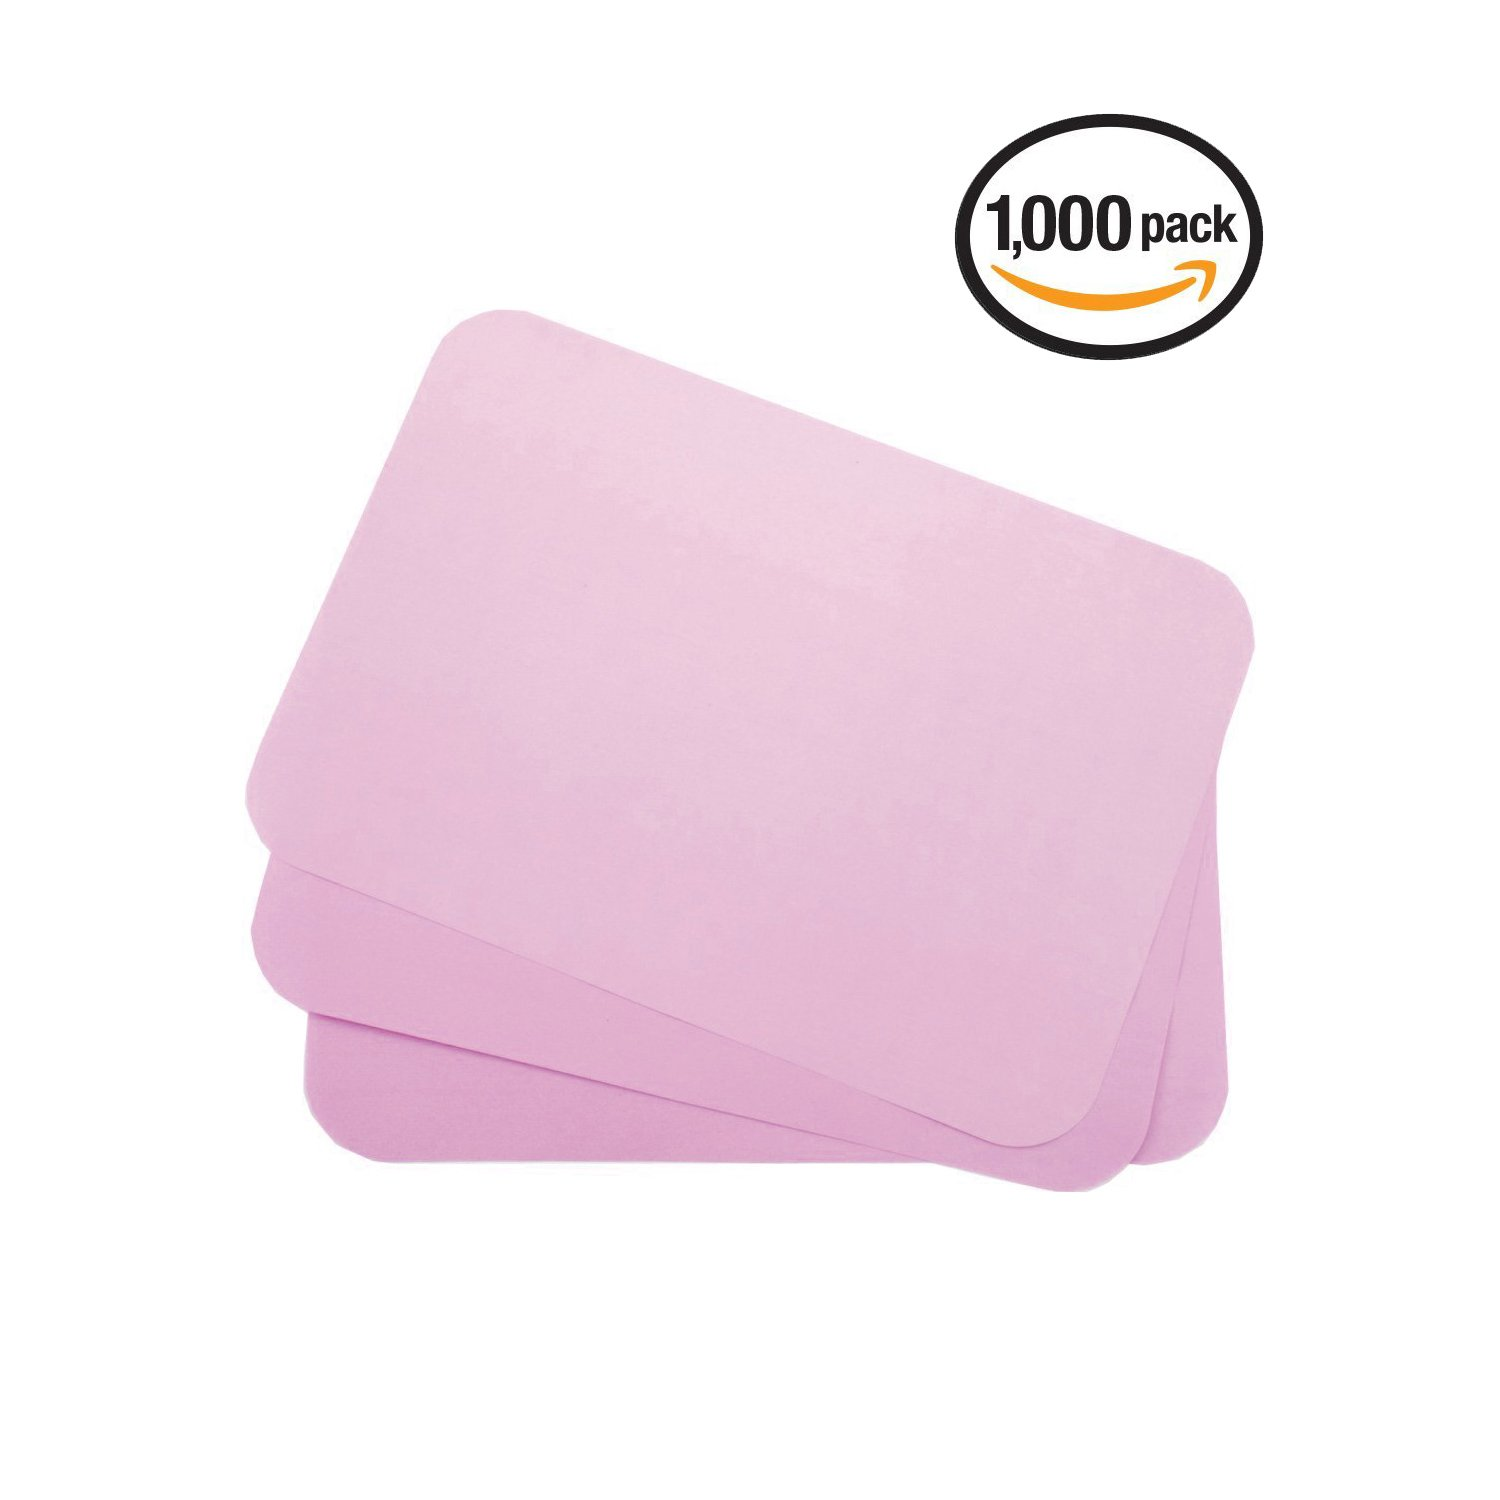 Dental Tray Covers Paper - Size B Tray 8.5''x12.25'' Premium Tray Paper Also Great for Beauty Tray, Pack of 1000, by Vivid (Pink)